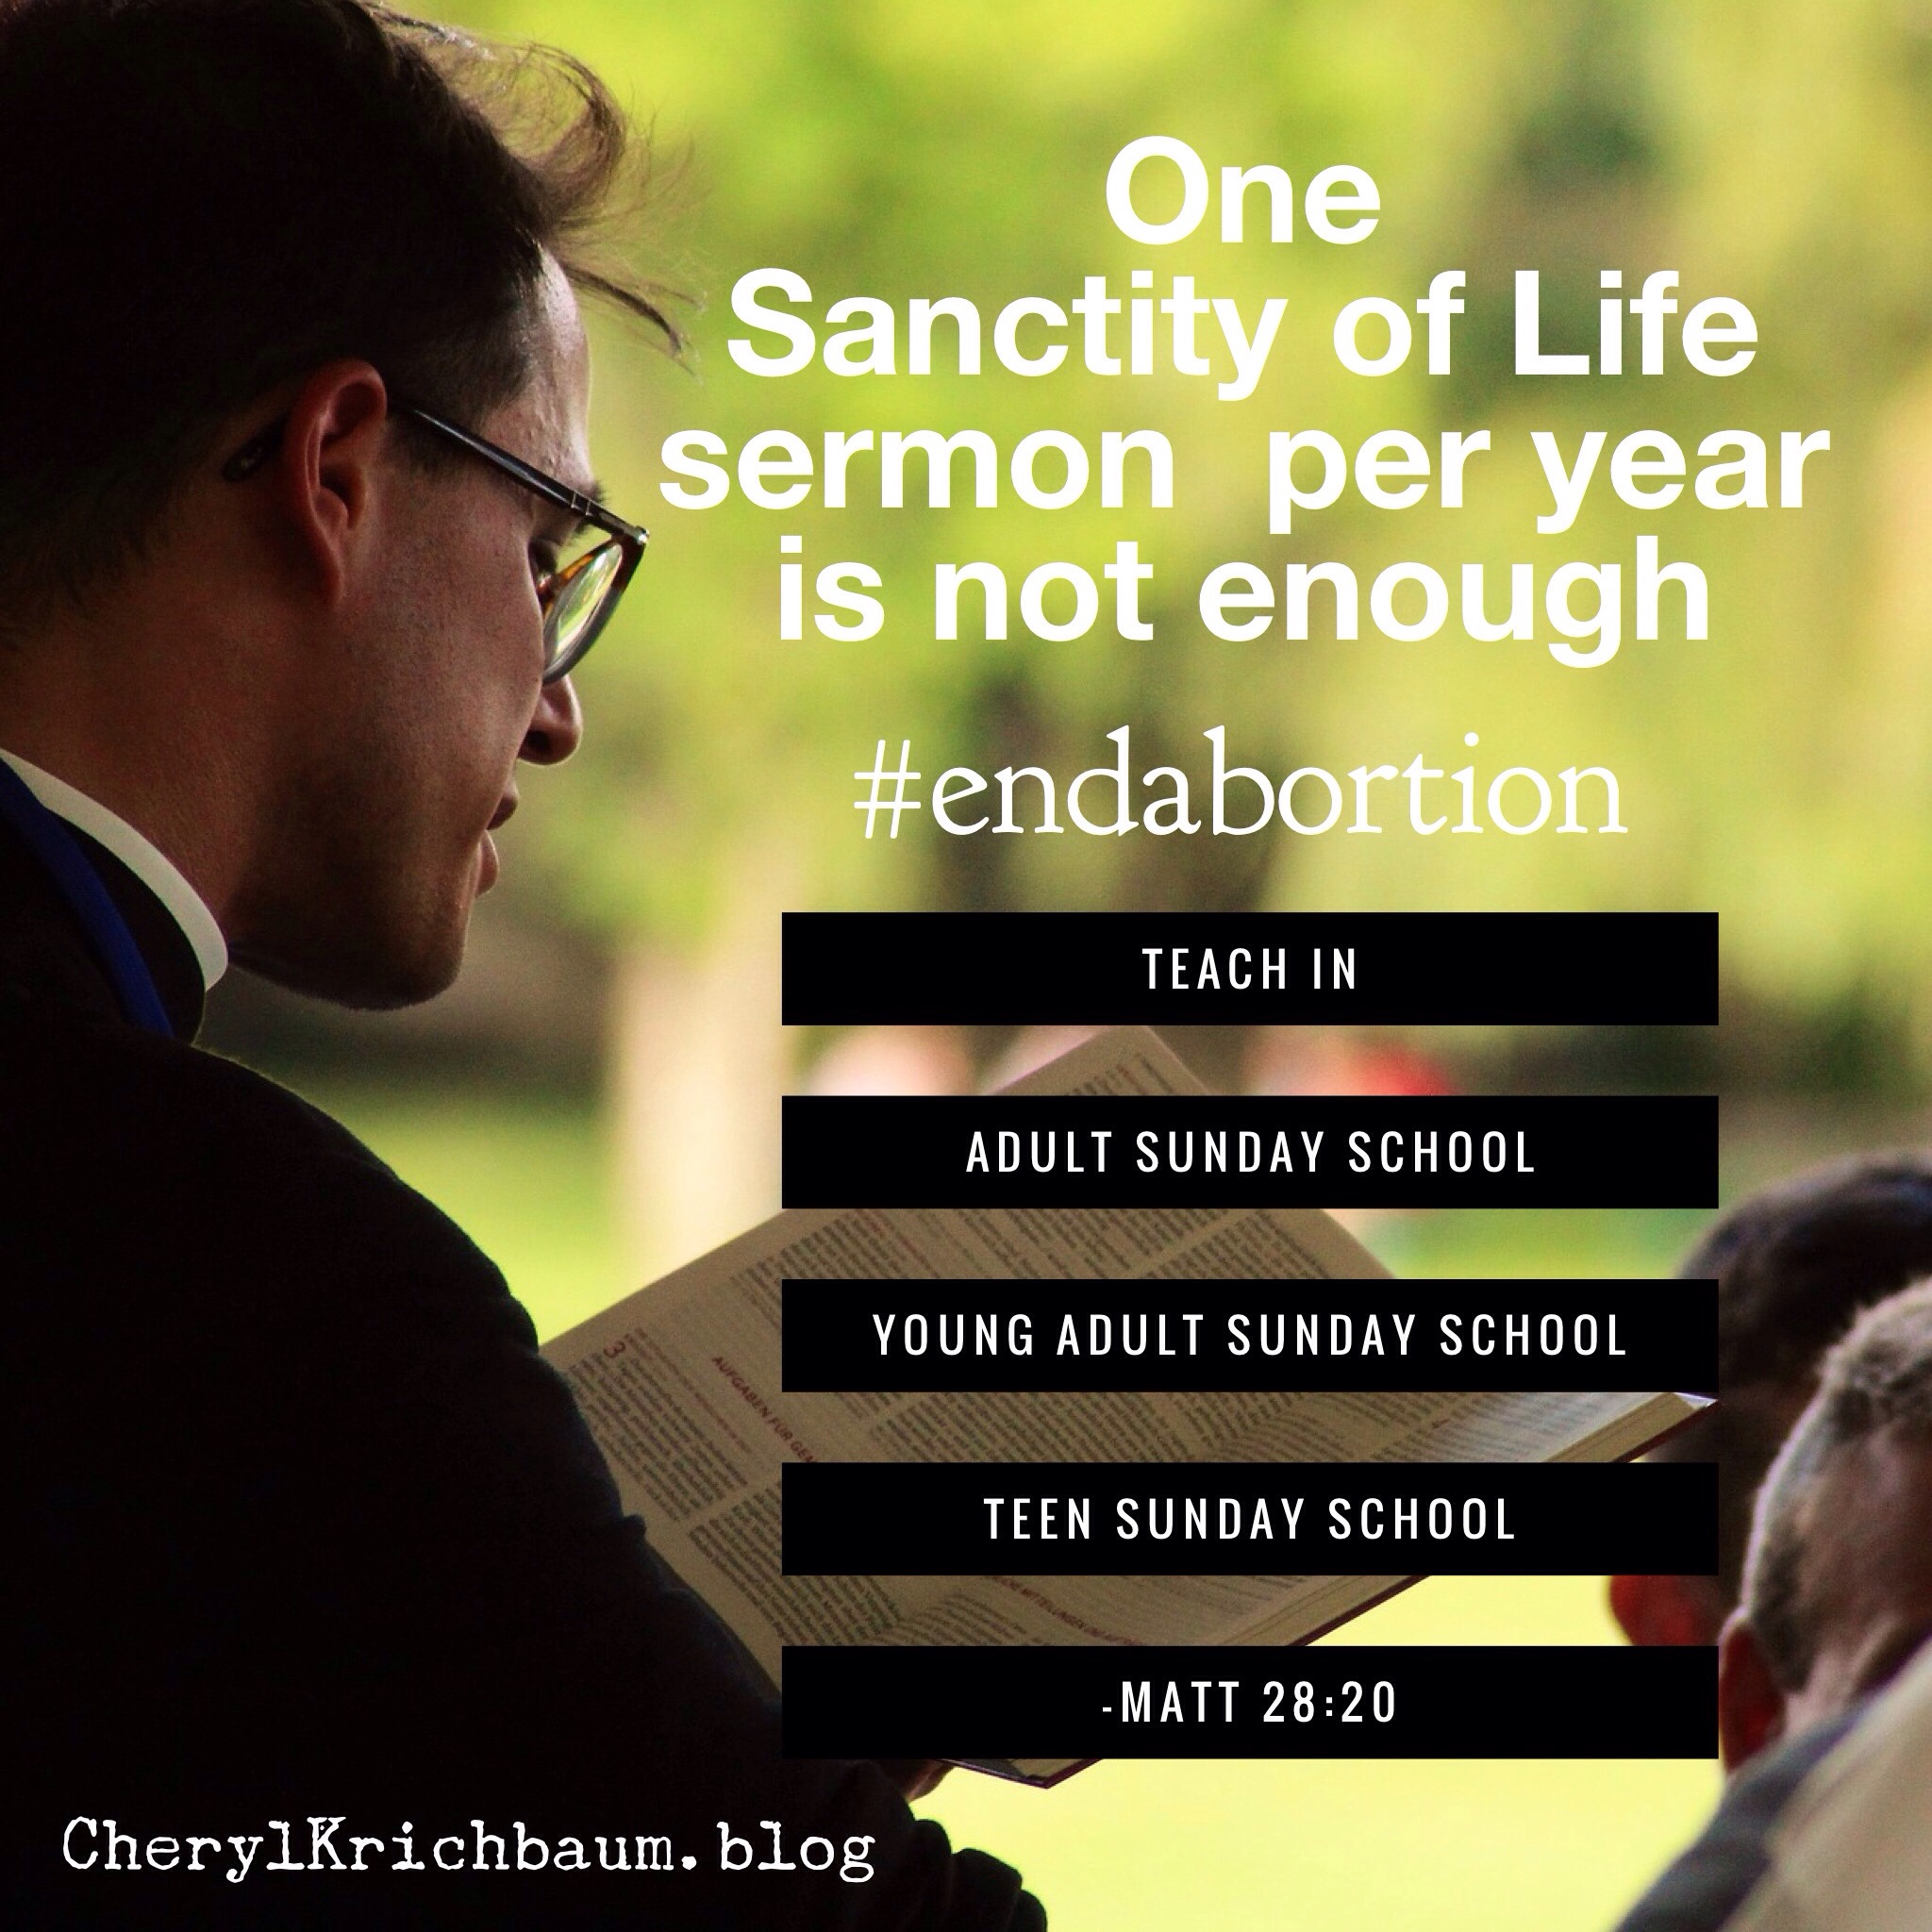 One Sanctity of Life sermon per year is not enough